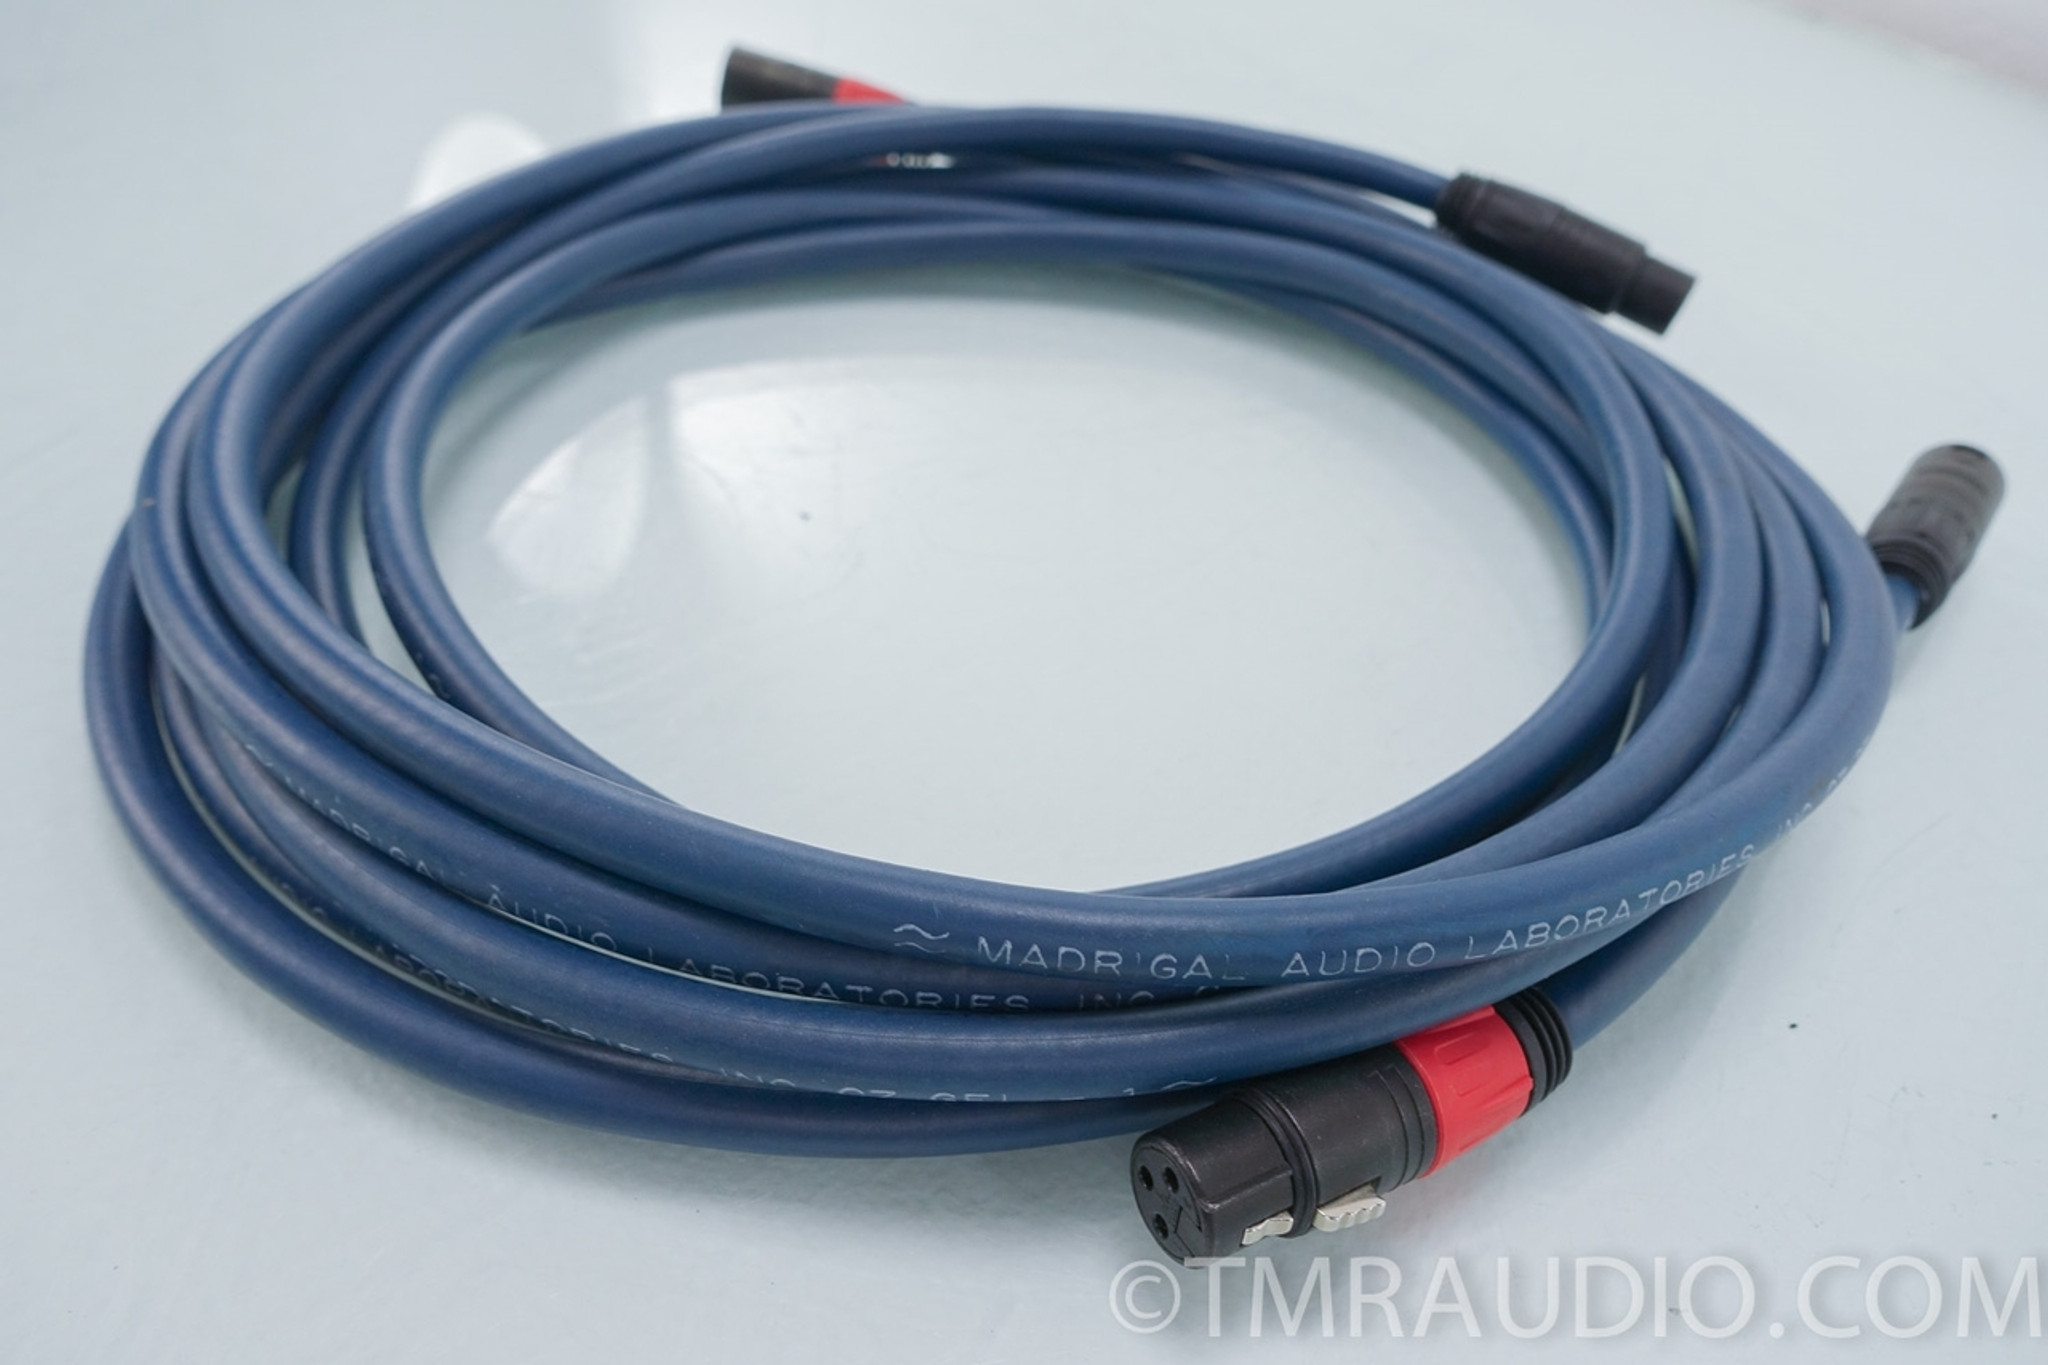 Madrigal CZ GEL-1 Balanced 3 meter XLR Cables / Interconnects - The ...